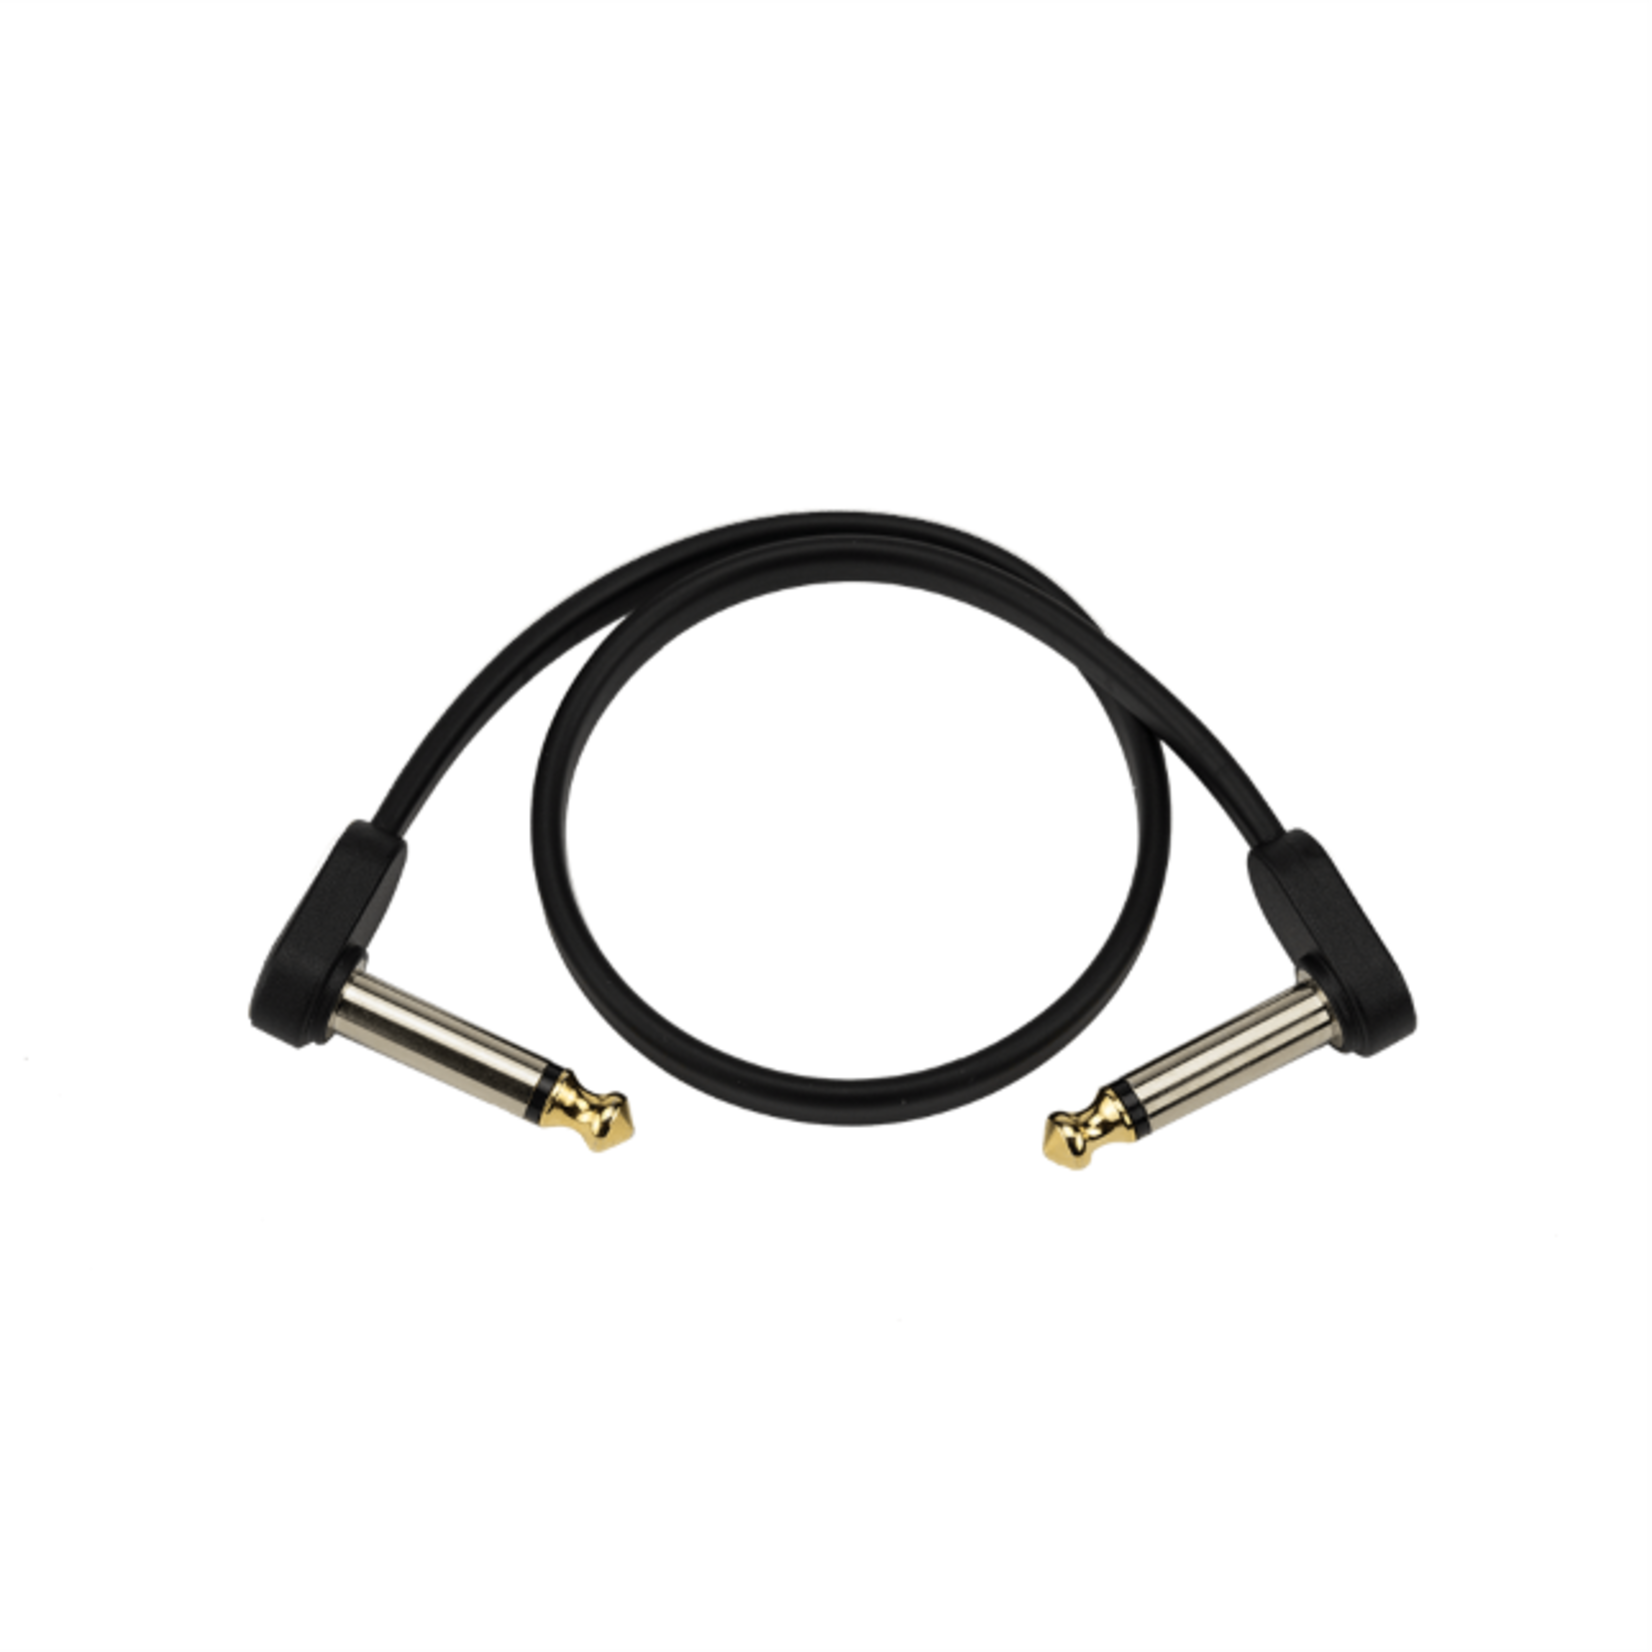 D'Addario D'Addario Flat Patch Cable 6 Inch Right Angle 2 Pack